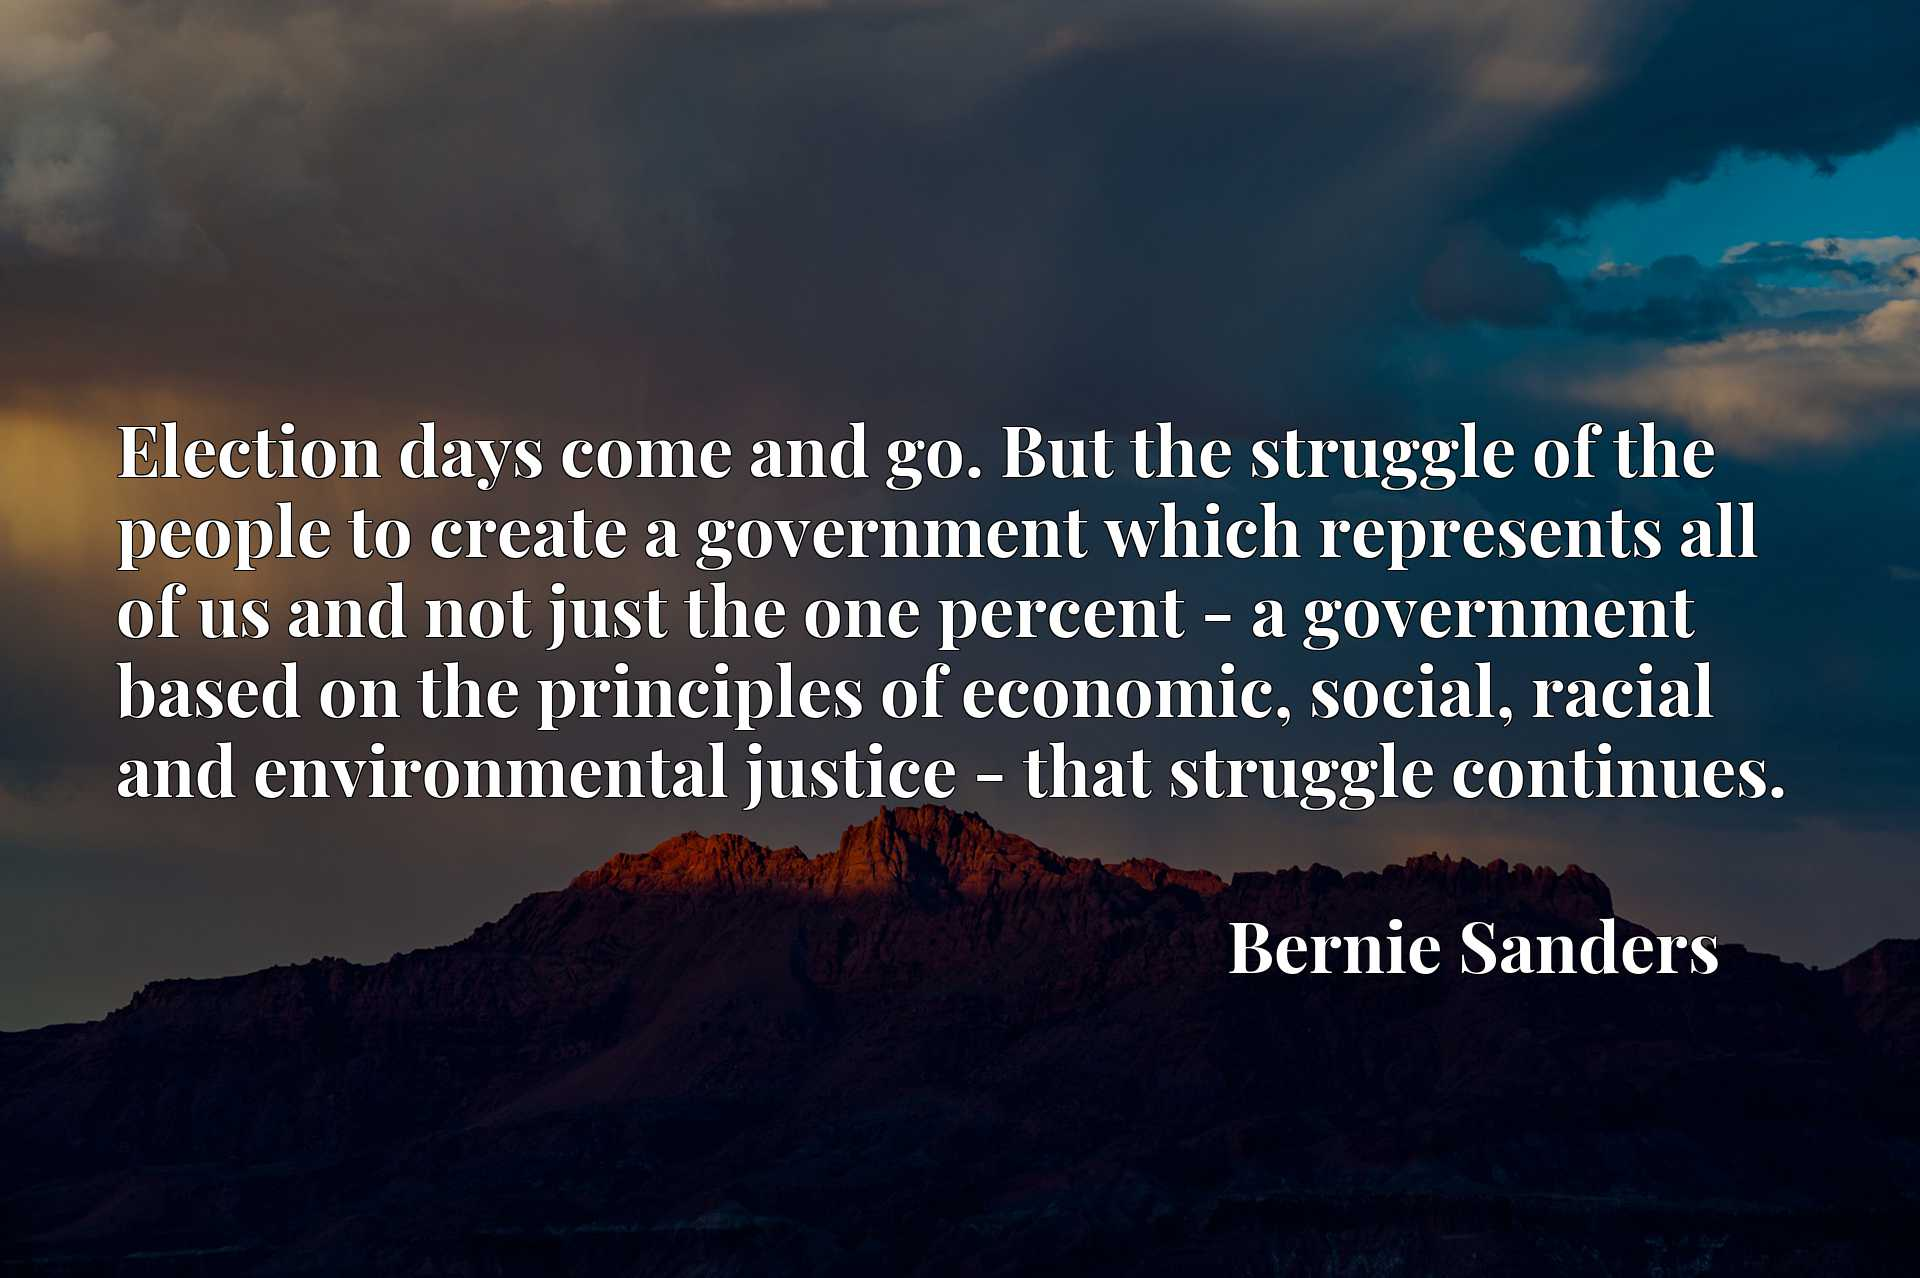 Election days come and go. But the struggle of the people to create a government which represents all of us and not just the one percent - a government based on the principles of economic, social, racial and environmental justice - that struggle continues.